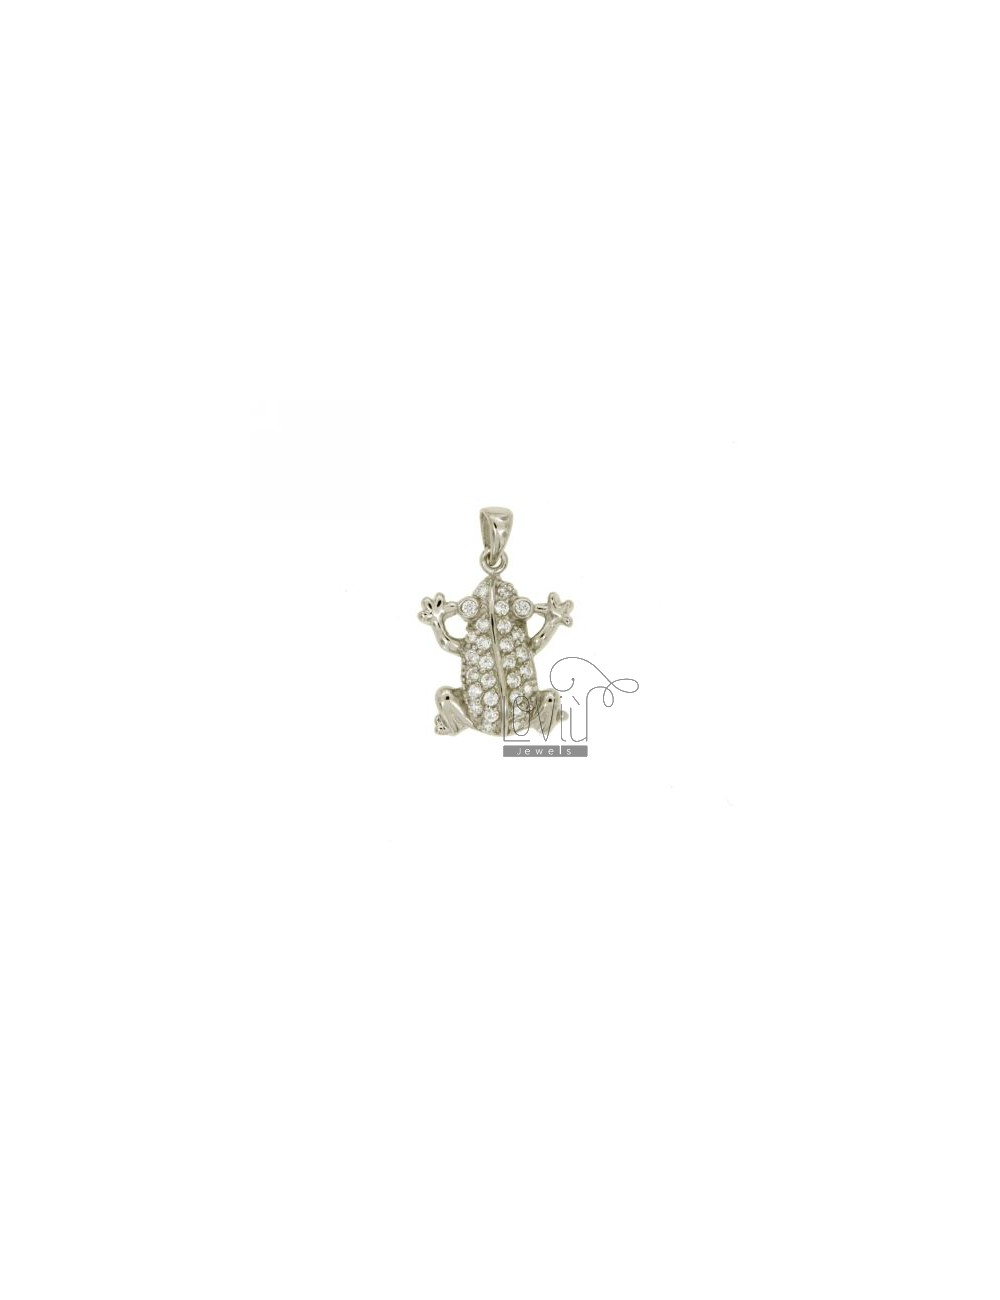 PENDANT FROG 18x16 MM IN AG TIT 925 ‰ AND ZIRCONIA